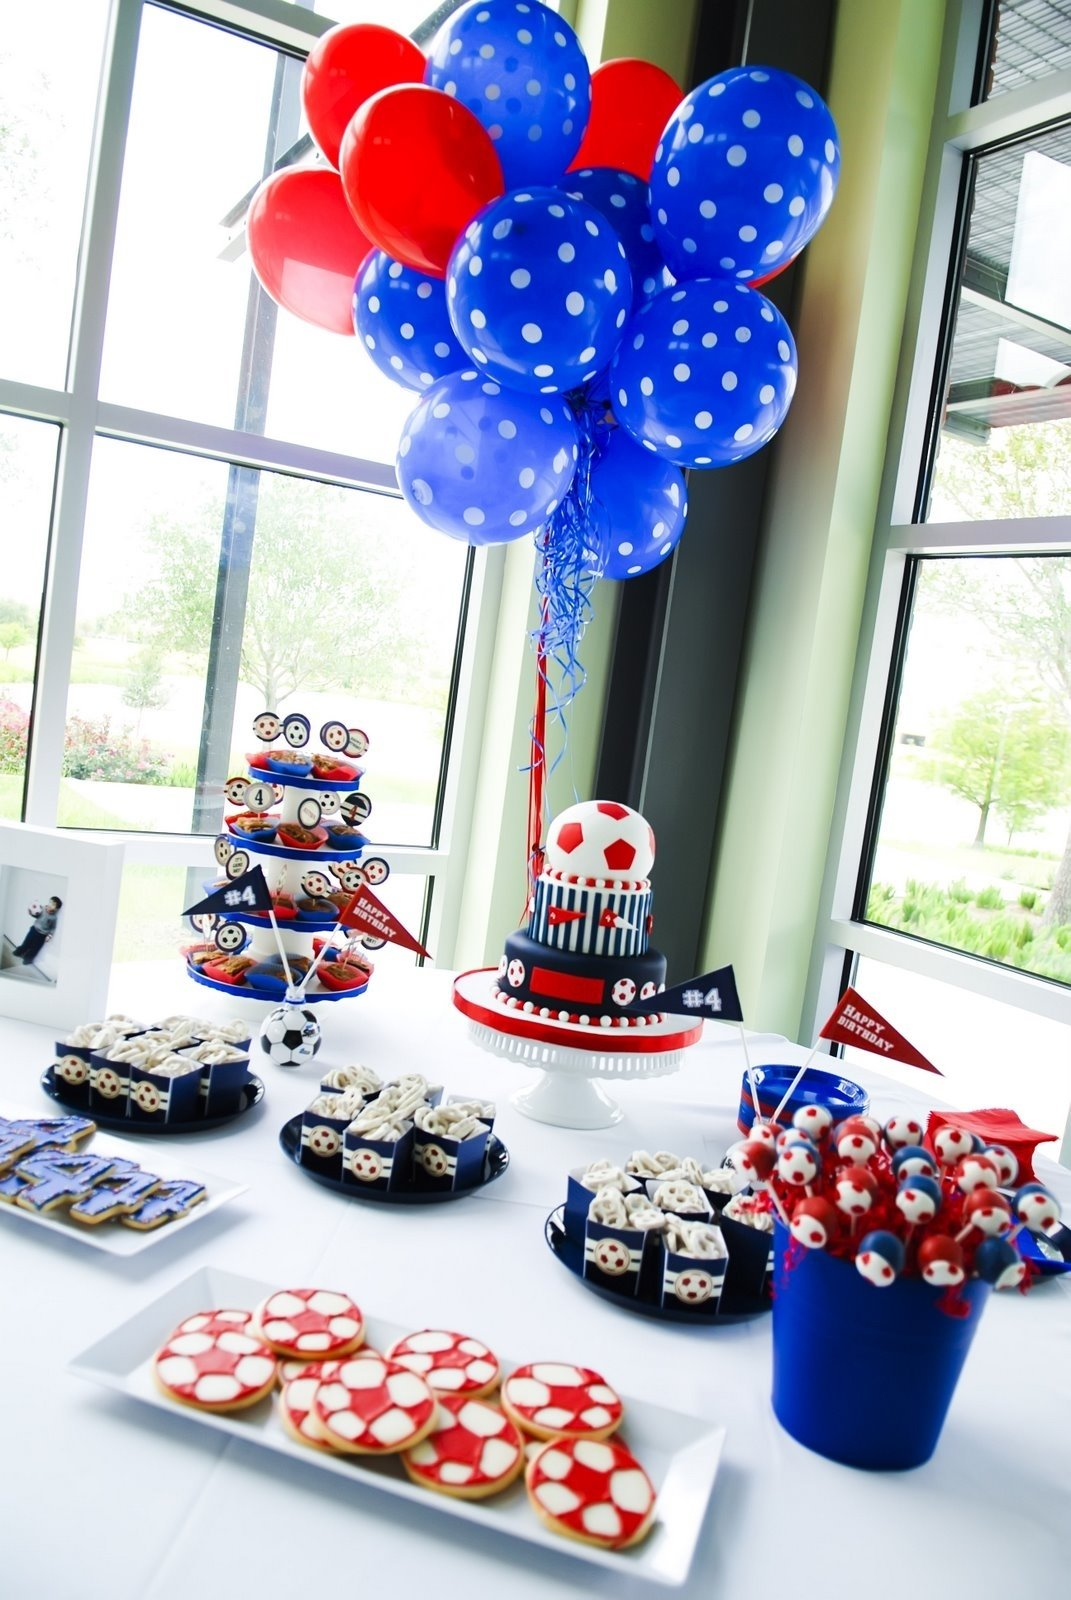 10 Attractive Birthday Party Ideas For Boys Age 9 50 awesome boys birthday party ideas i heart naptime 54 2020